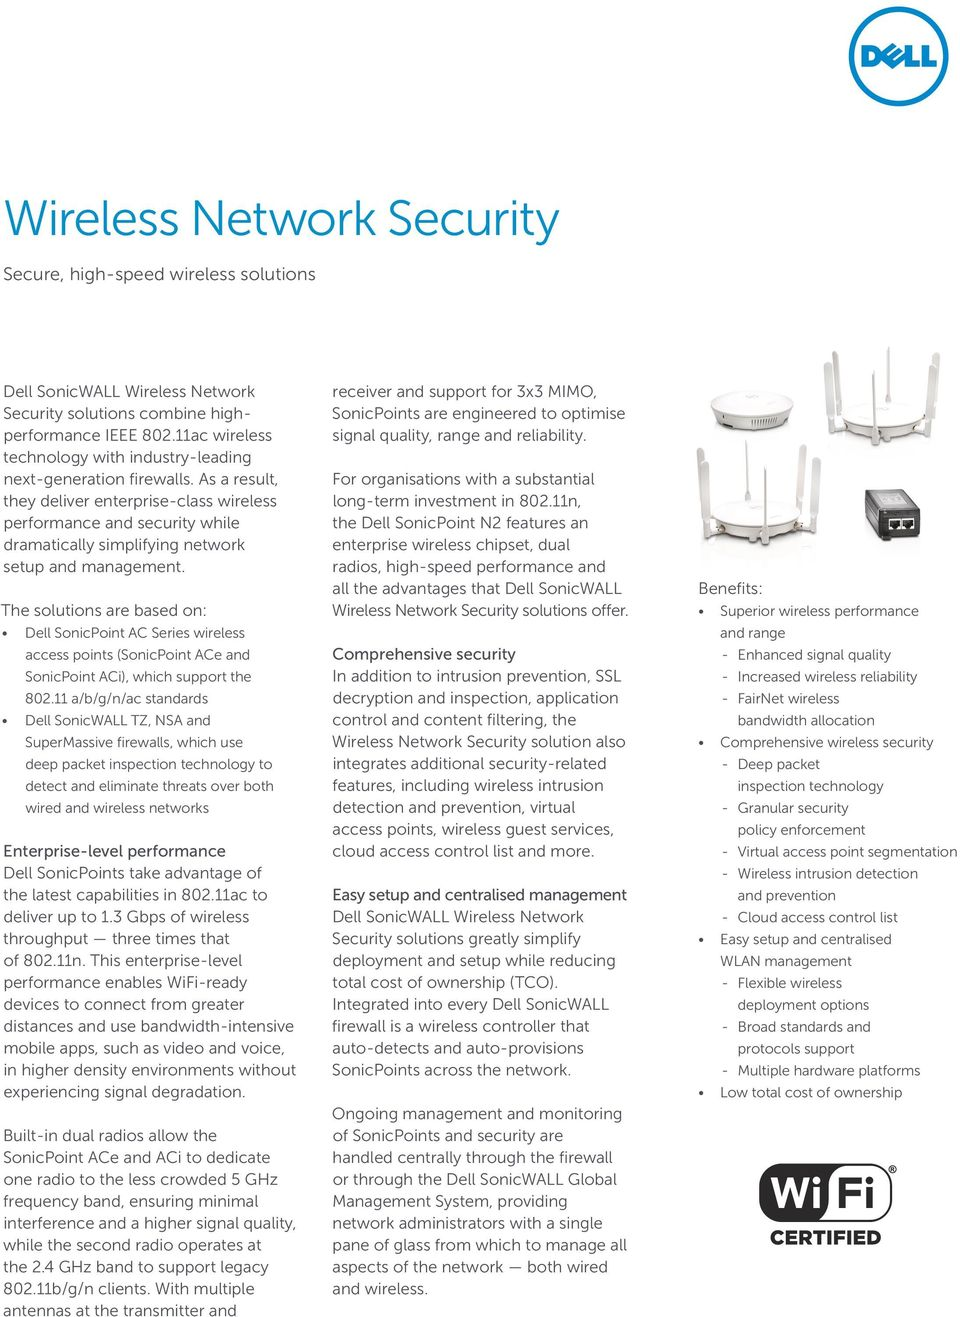 The solutions are based on: Dell SonicPoint AC Series wireless access points ( and SonicPoint ACi), which support the 82.